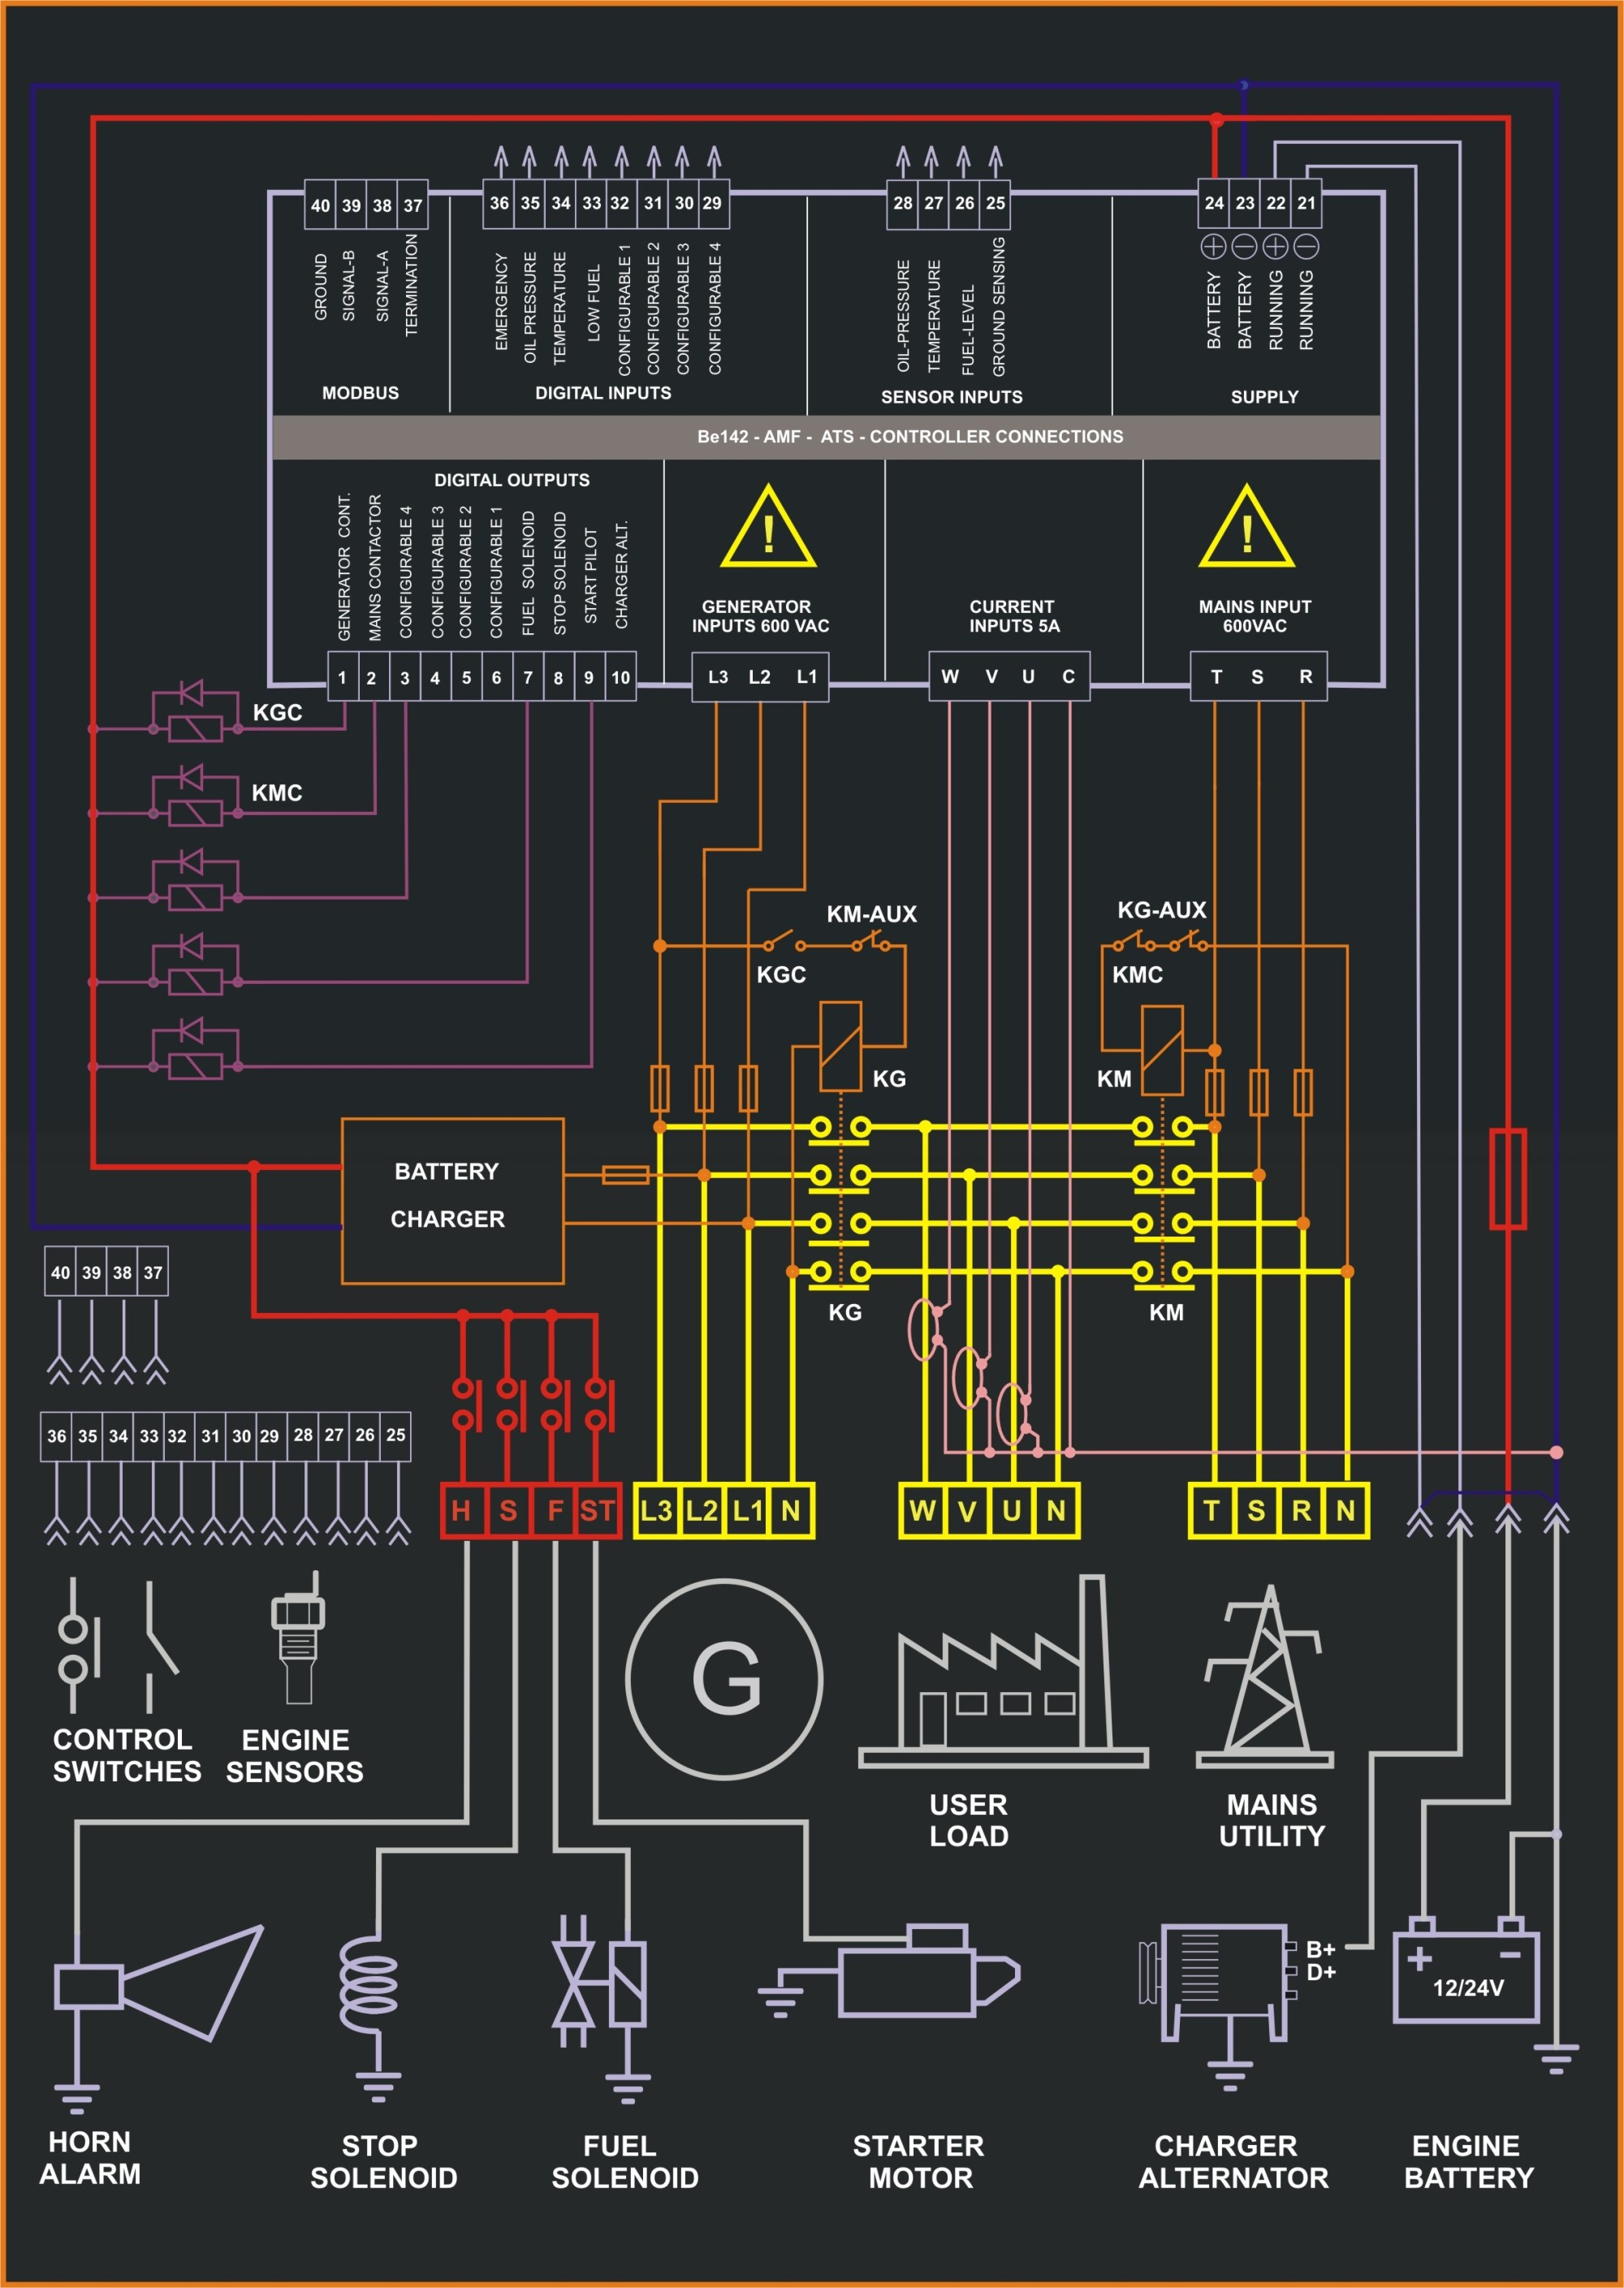 hight resolution of wiring diagram of control panel wiring diagram sheet cat generator control panel wiring diagram wiring diagram generator control panel